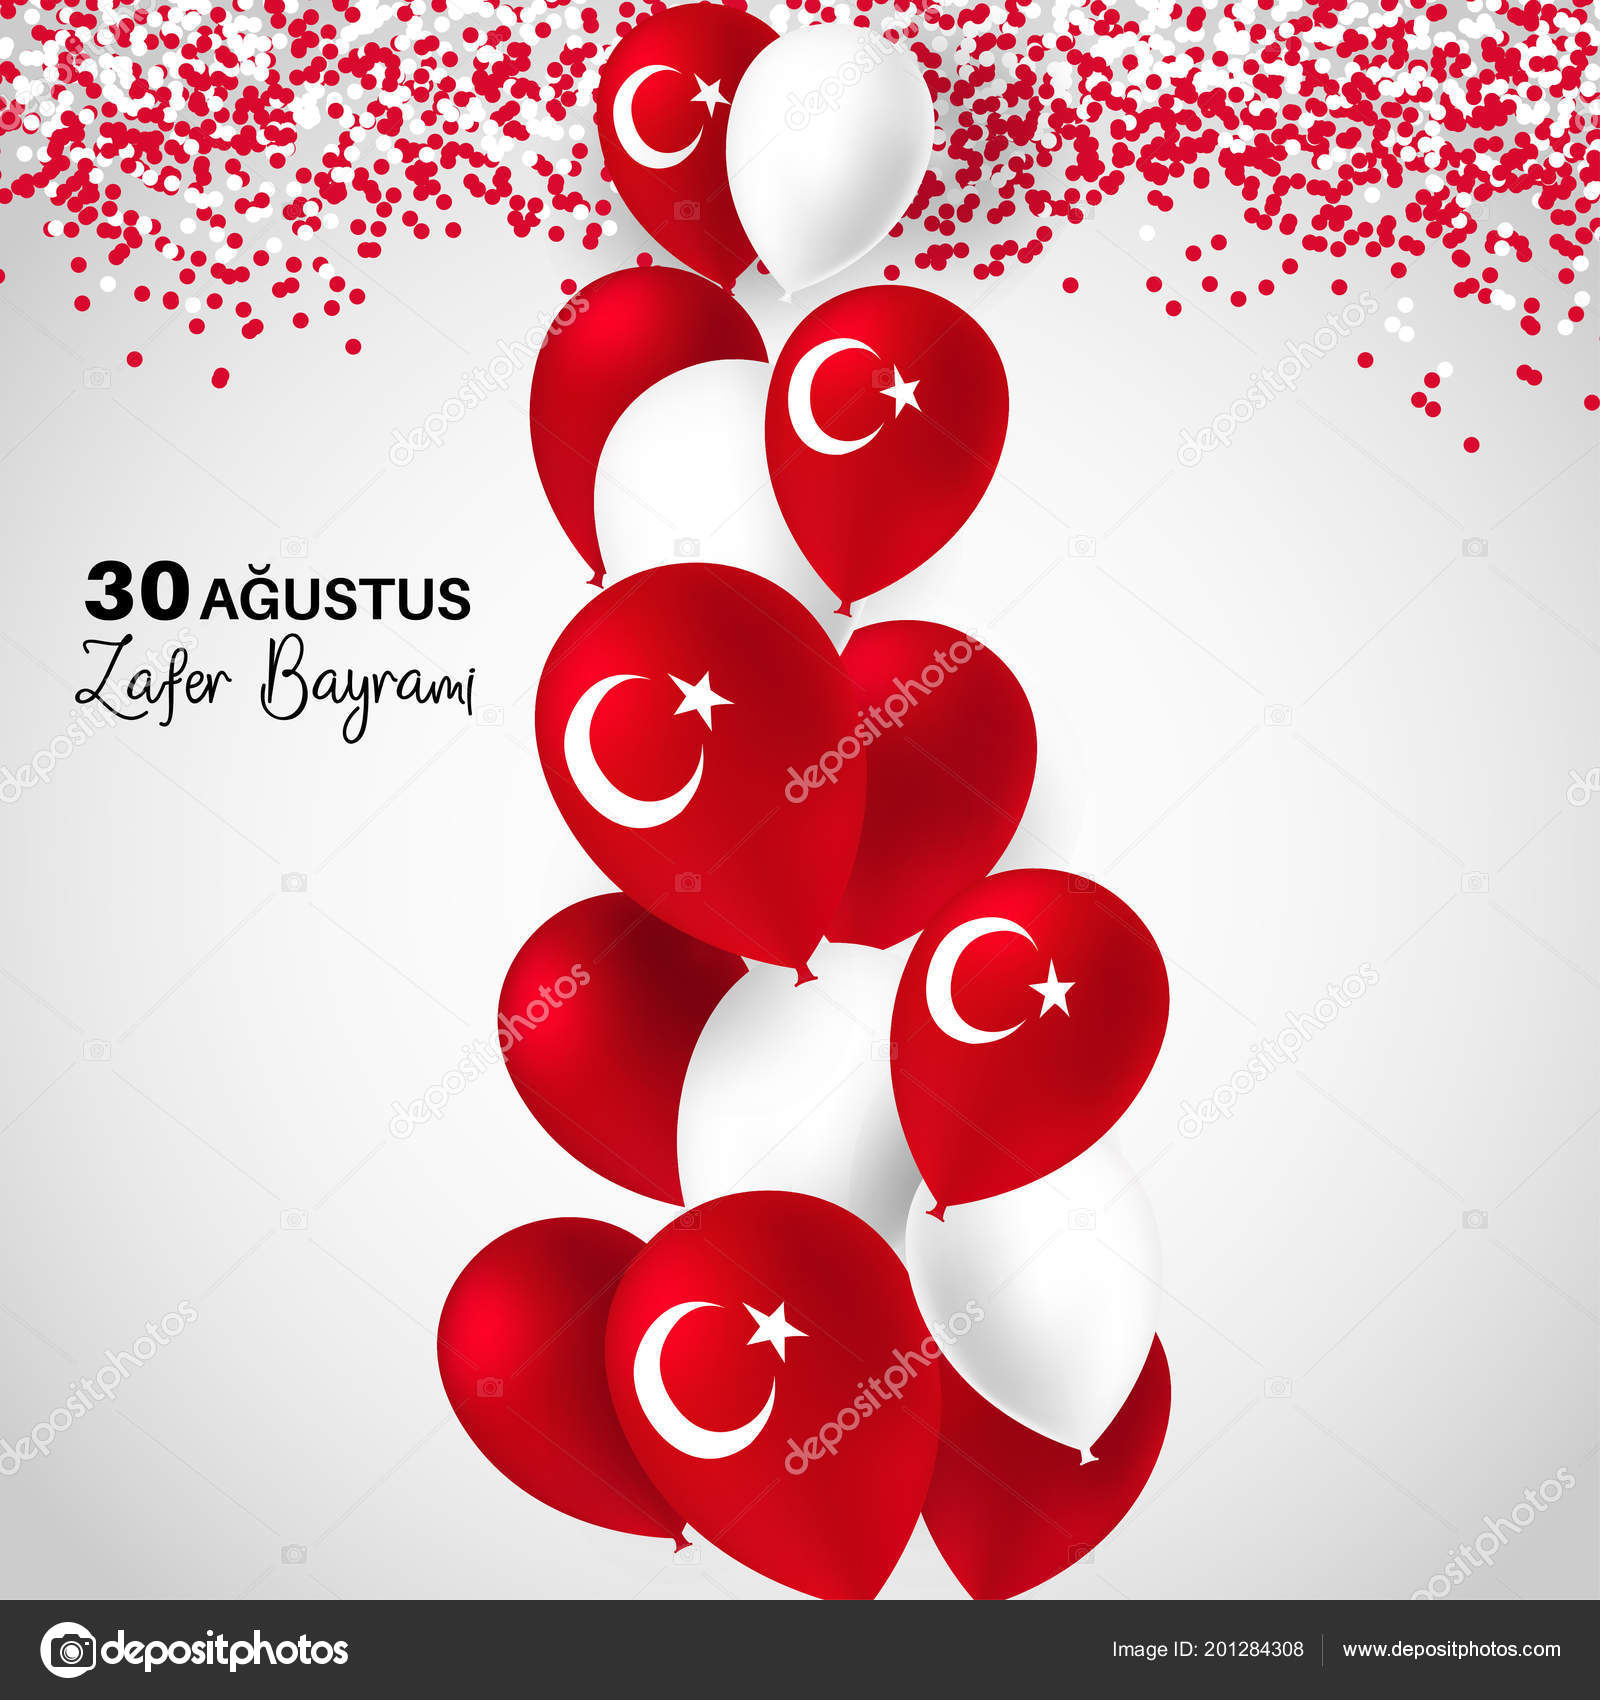 August turkey victory day zafer bayrami greeting card turkish turkey victory day zafer bayrami greeting card turkish ballons confetti isolated on white background patriotic symbolic background vector illustration m4hsunfo